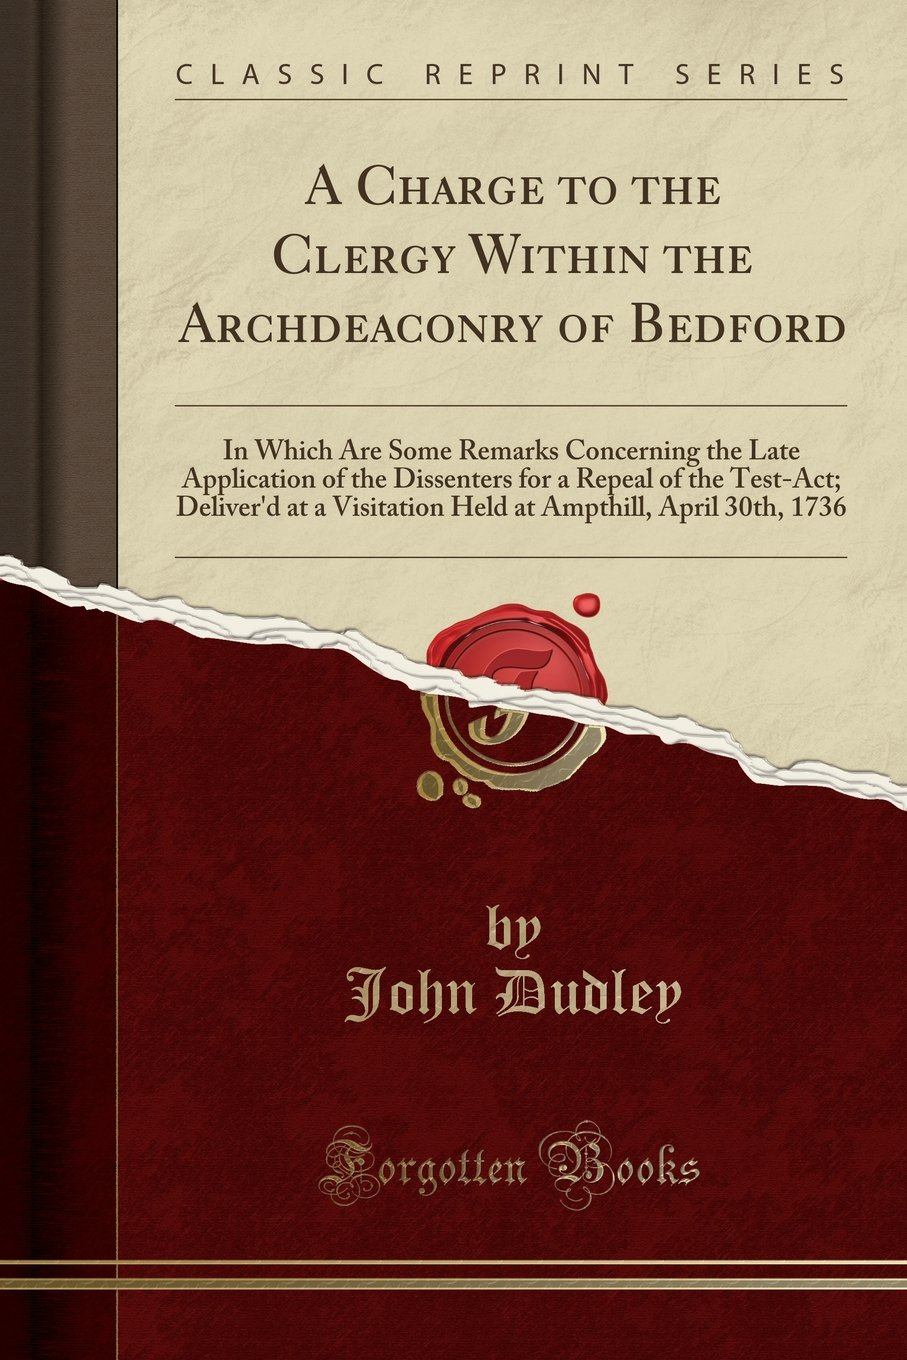 A Charge to the Clergy Within the Archdeaconry of Bedford: In Which Are Some Remarks Concerning the Late Application of the Dissenters for a Repeal of Ampthill, April 30th, 1736 (Classic Reprint) pdf